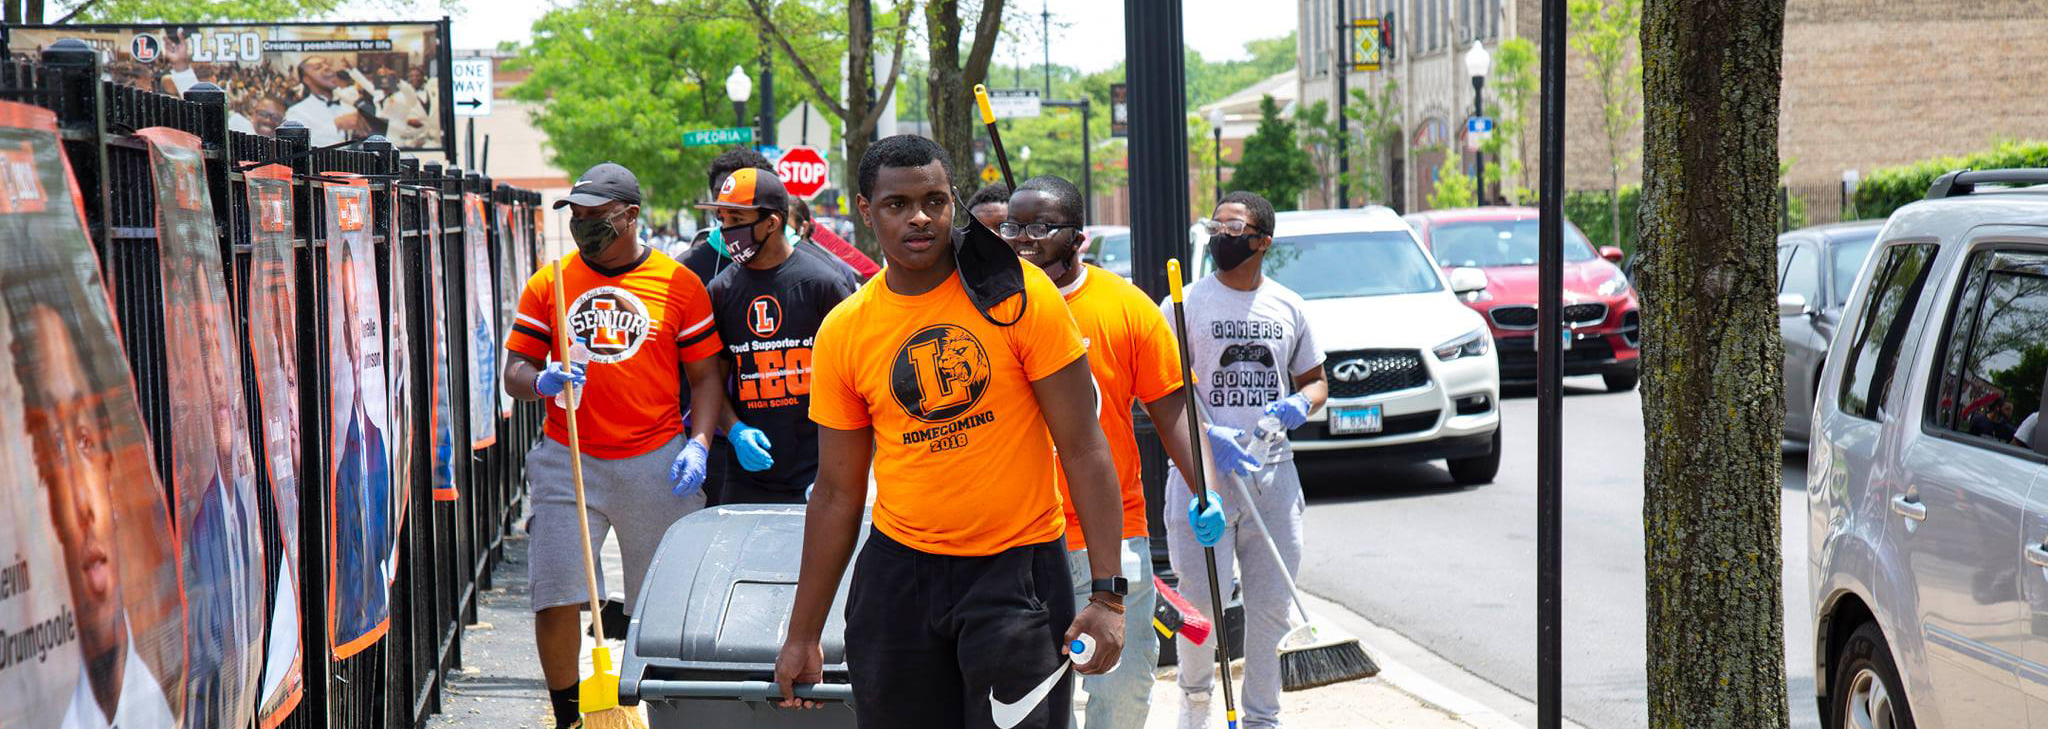 After a rough weekend, our young men help to bring Auburn-Gresham back to life